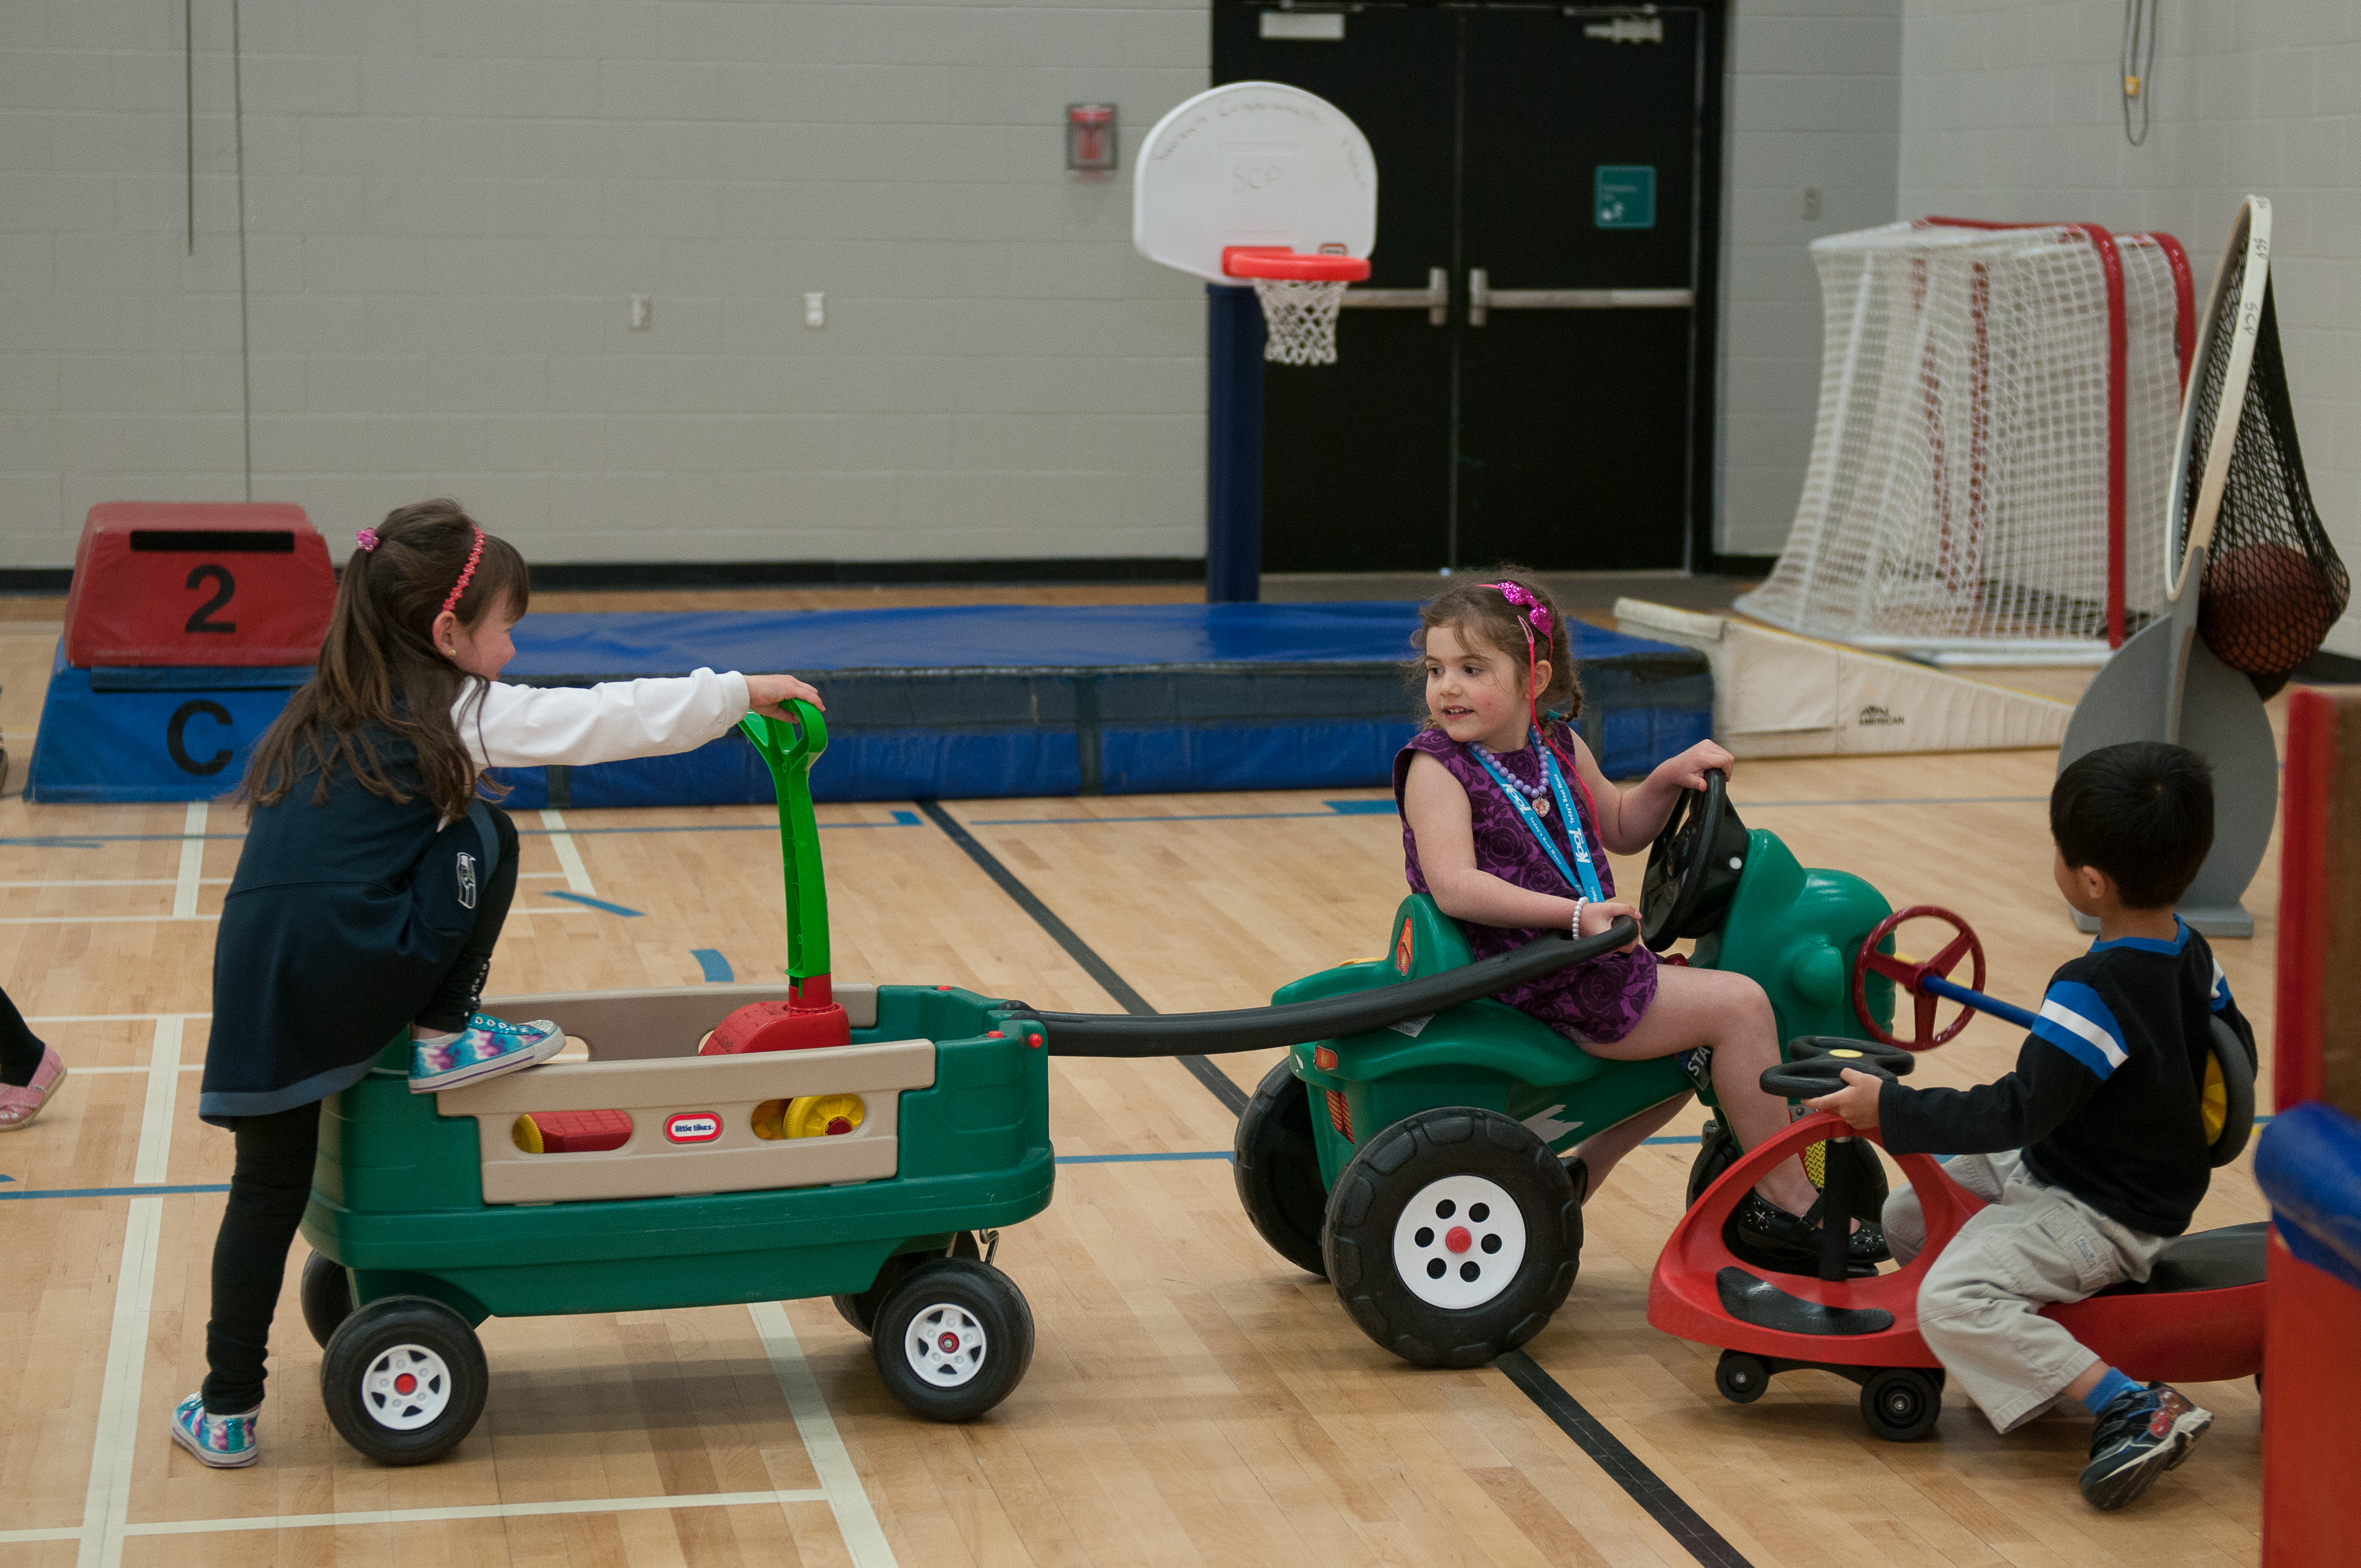 photo of children playing in gymnasium